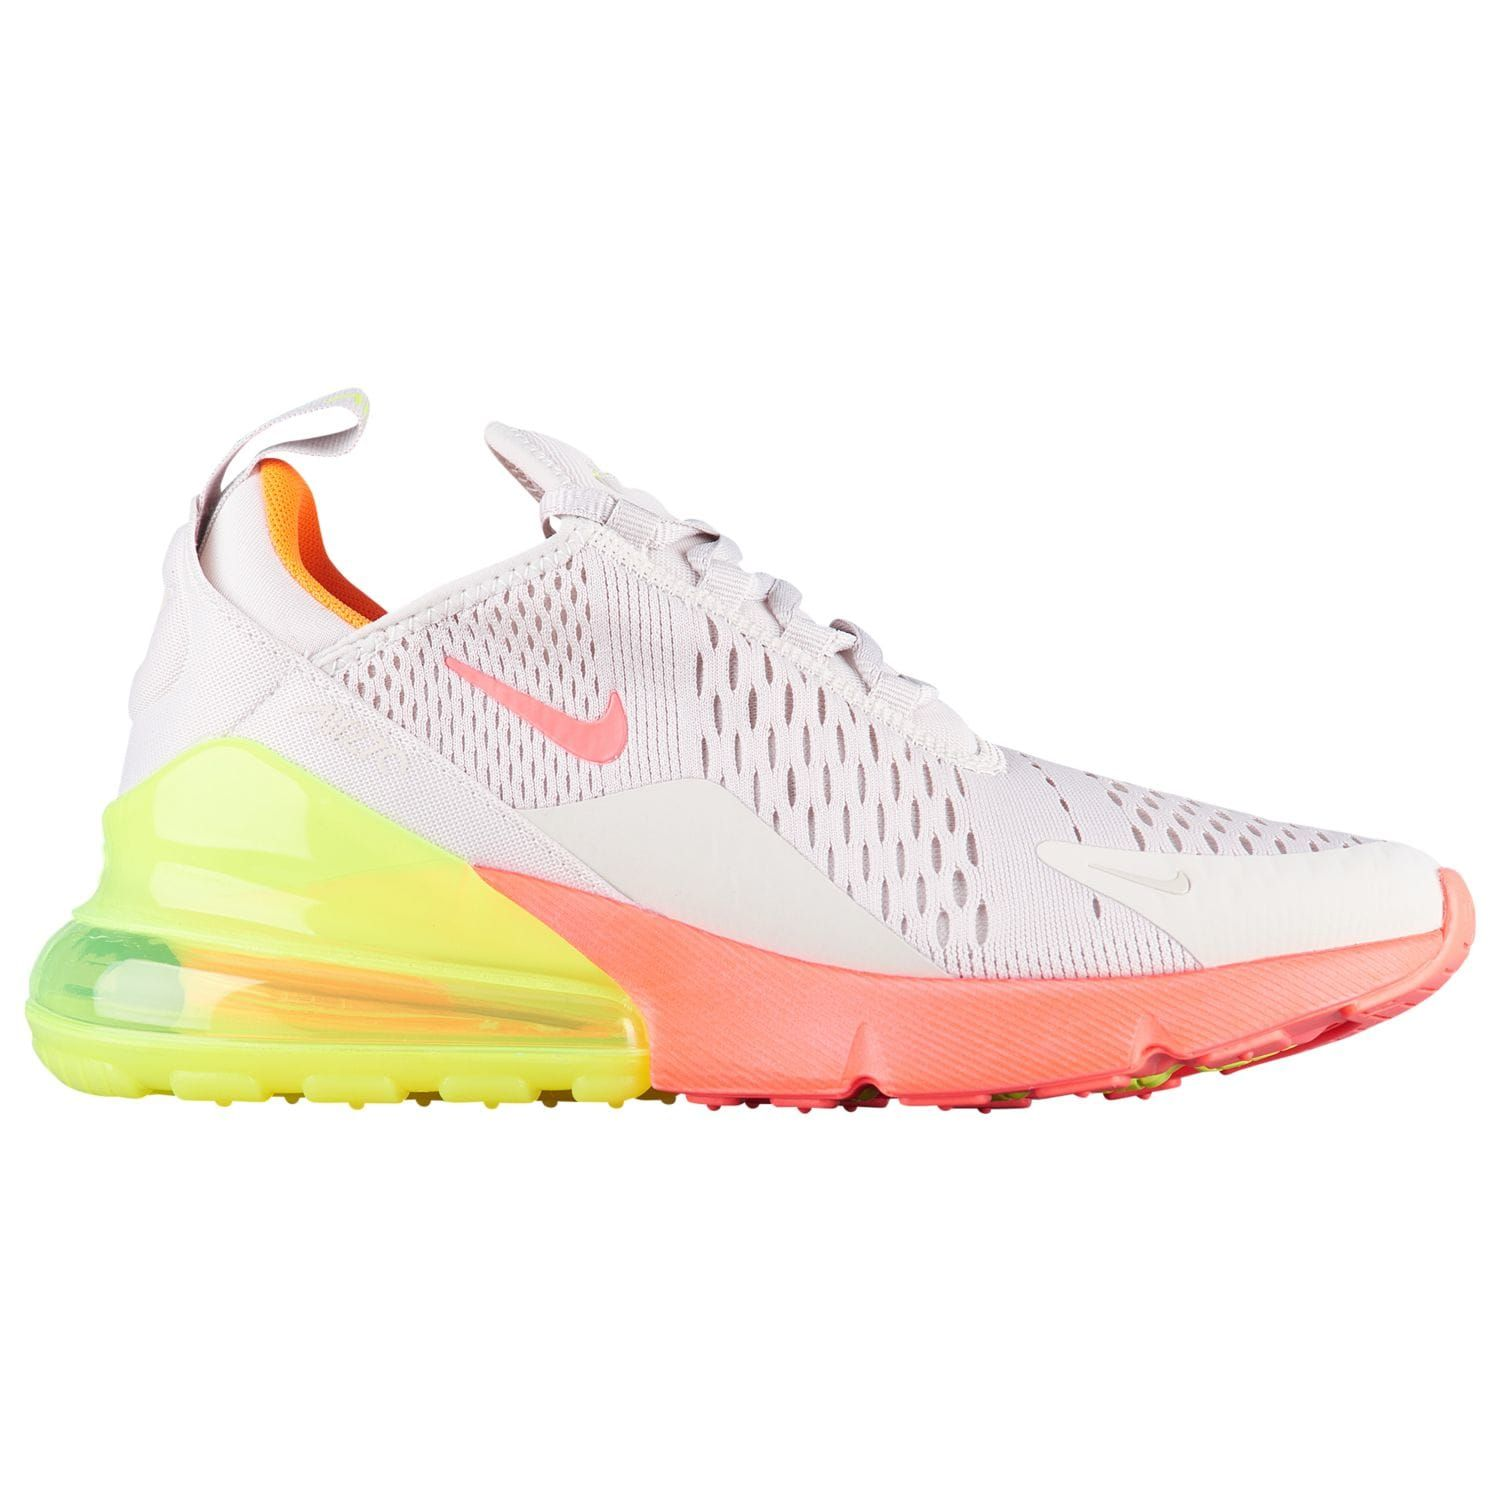 sports shoes b5c0d e2e29 Nike Air Max 270 - Women s - Running - Shoes - Desert Sand Hot  Punch Volt Total Orange